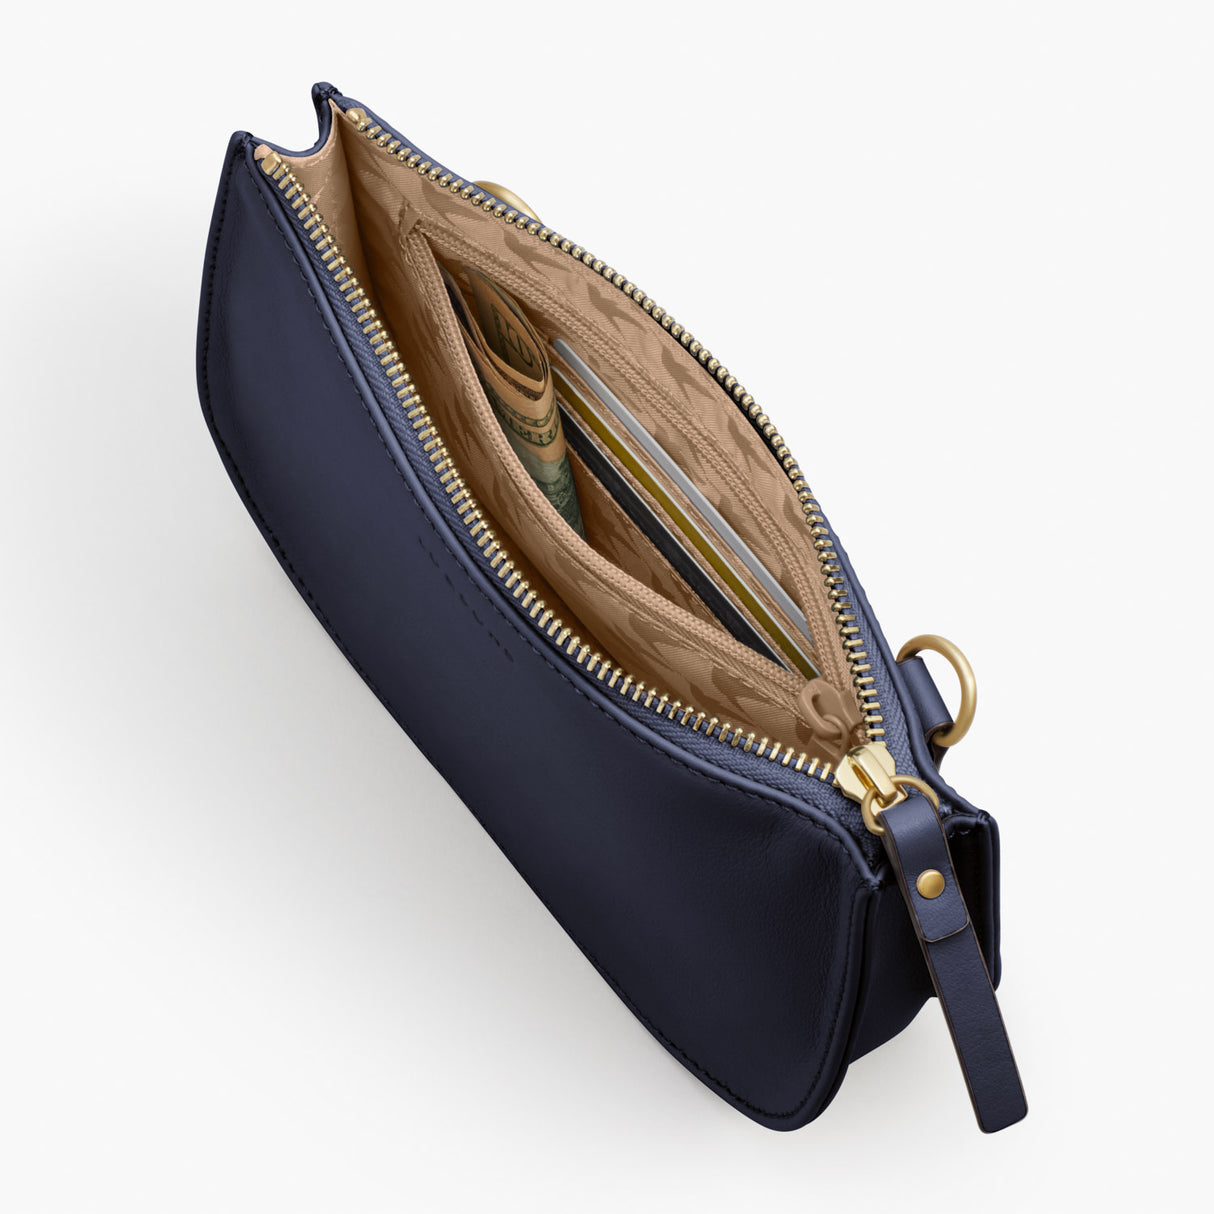 Interior Zipper Pocket - Waverley 2 - Nappa Leather - Deep Navy / Gold / Camel - Crossbody Bag - Lo & Sons